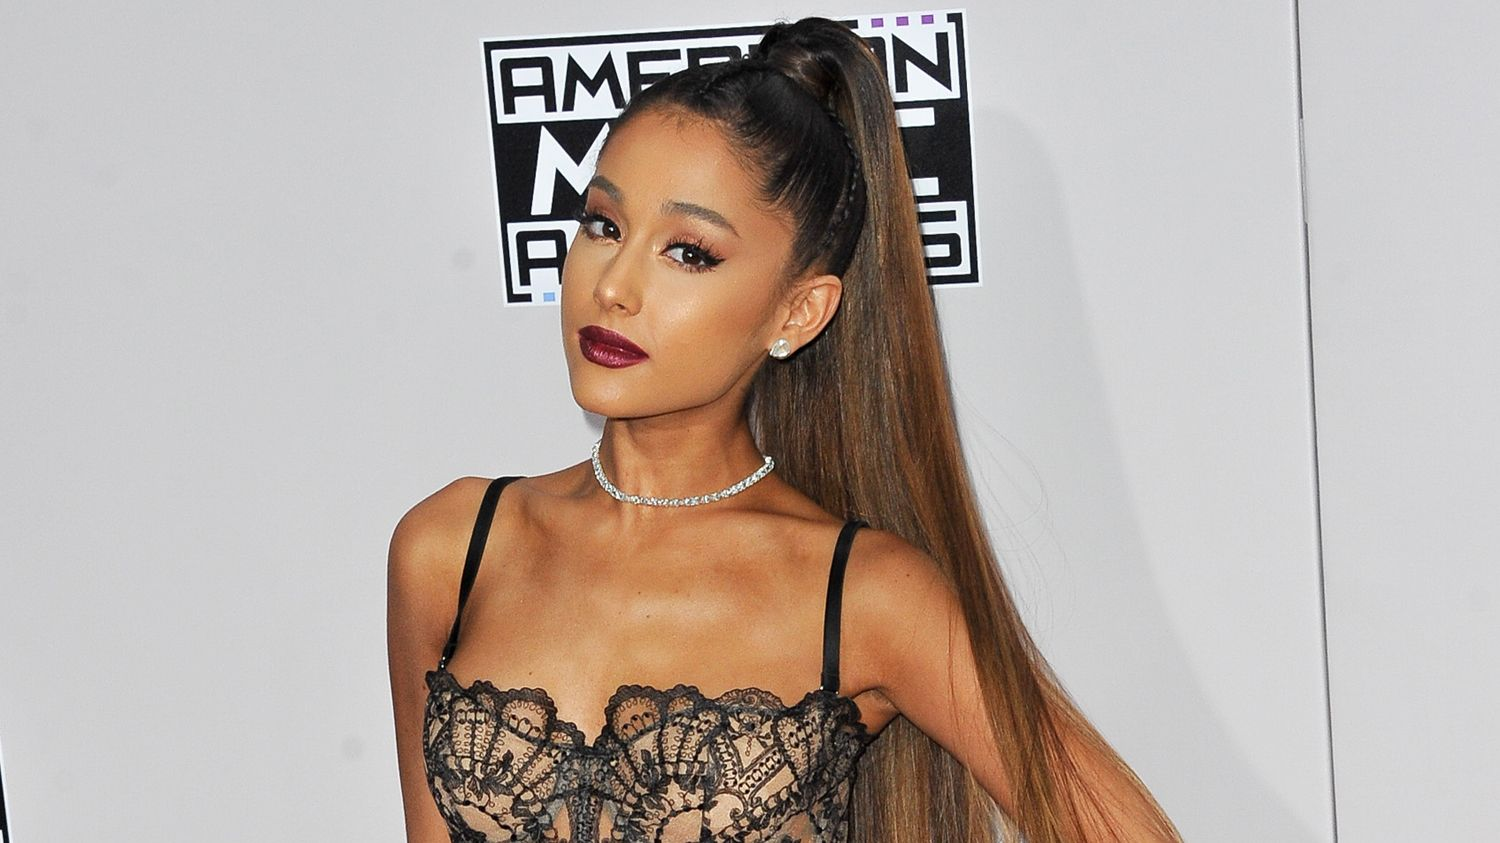 Ariana Grande ditches signature ponytail to show off natural curls